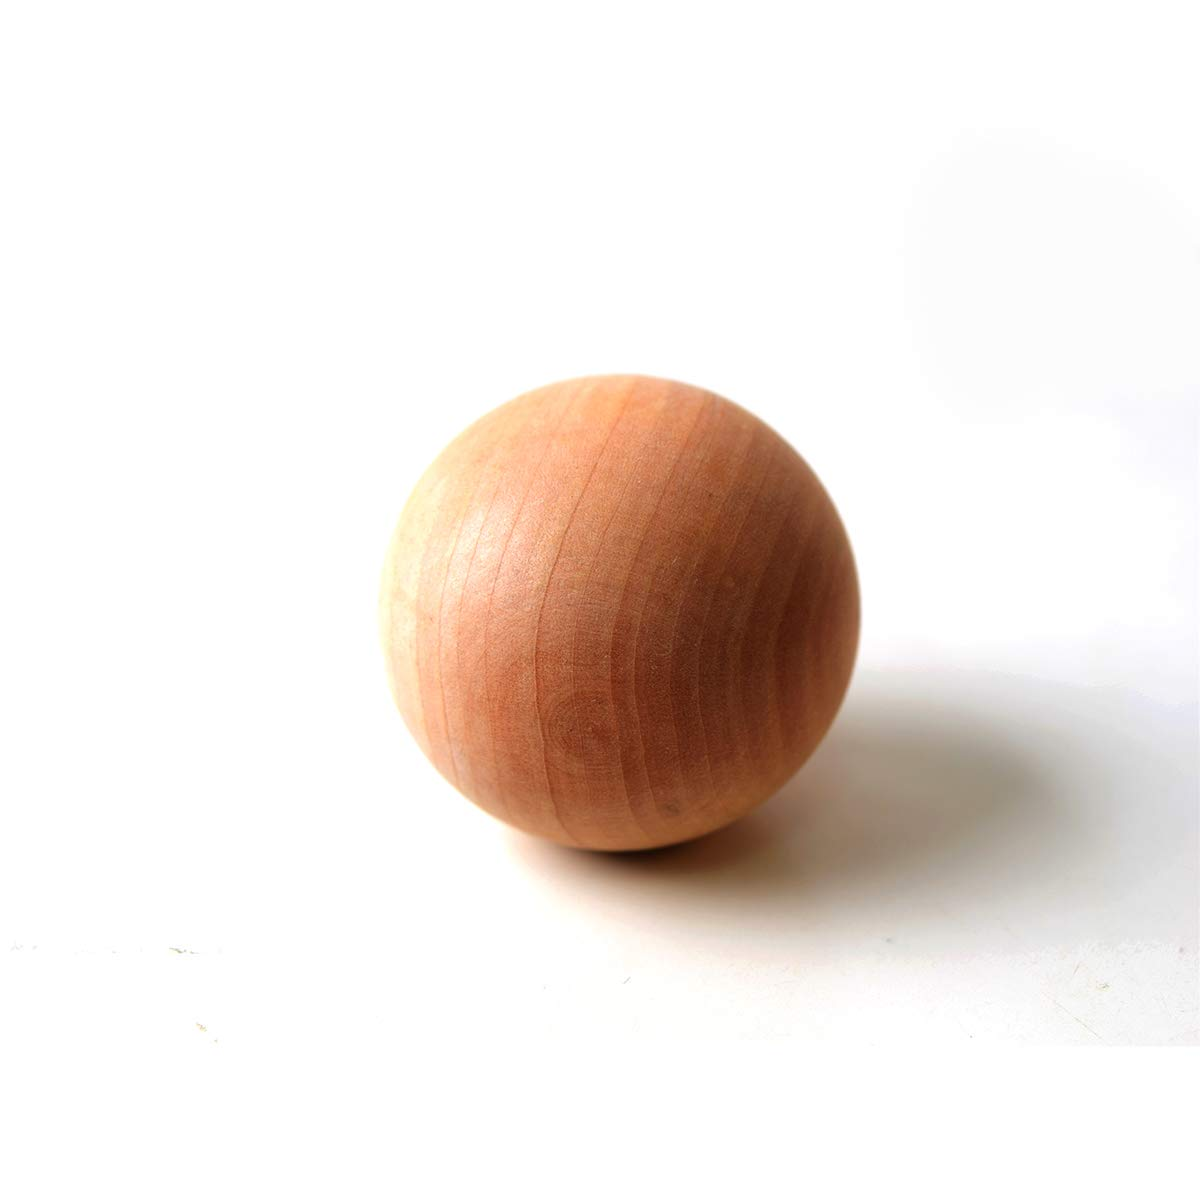 Replacement for Wine Decanter Wood Round Ball - Cork Stopper - Ball Cork - Package of 1 by Mobofix (Image #3)